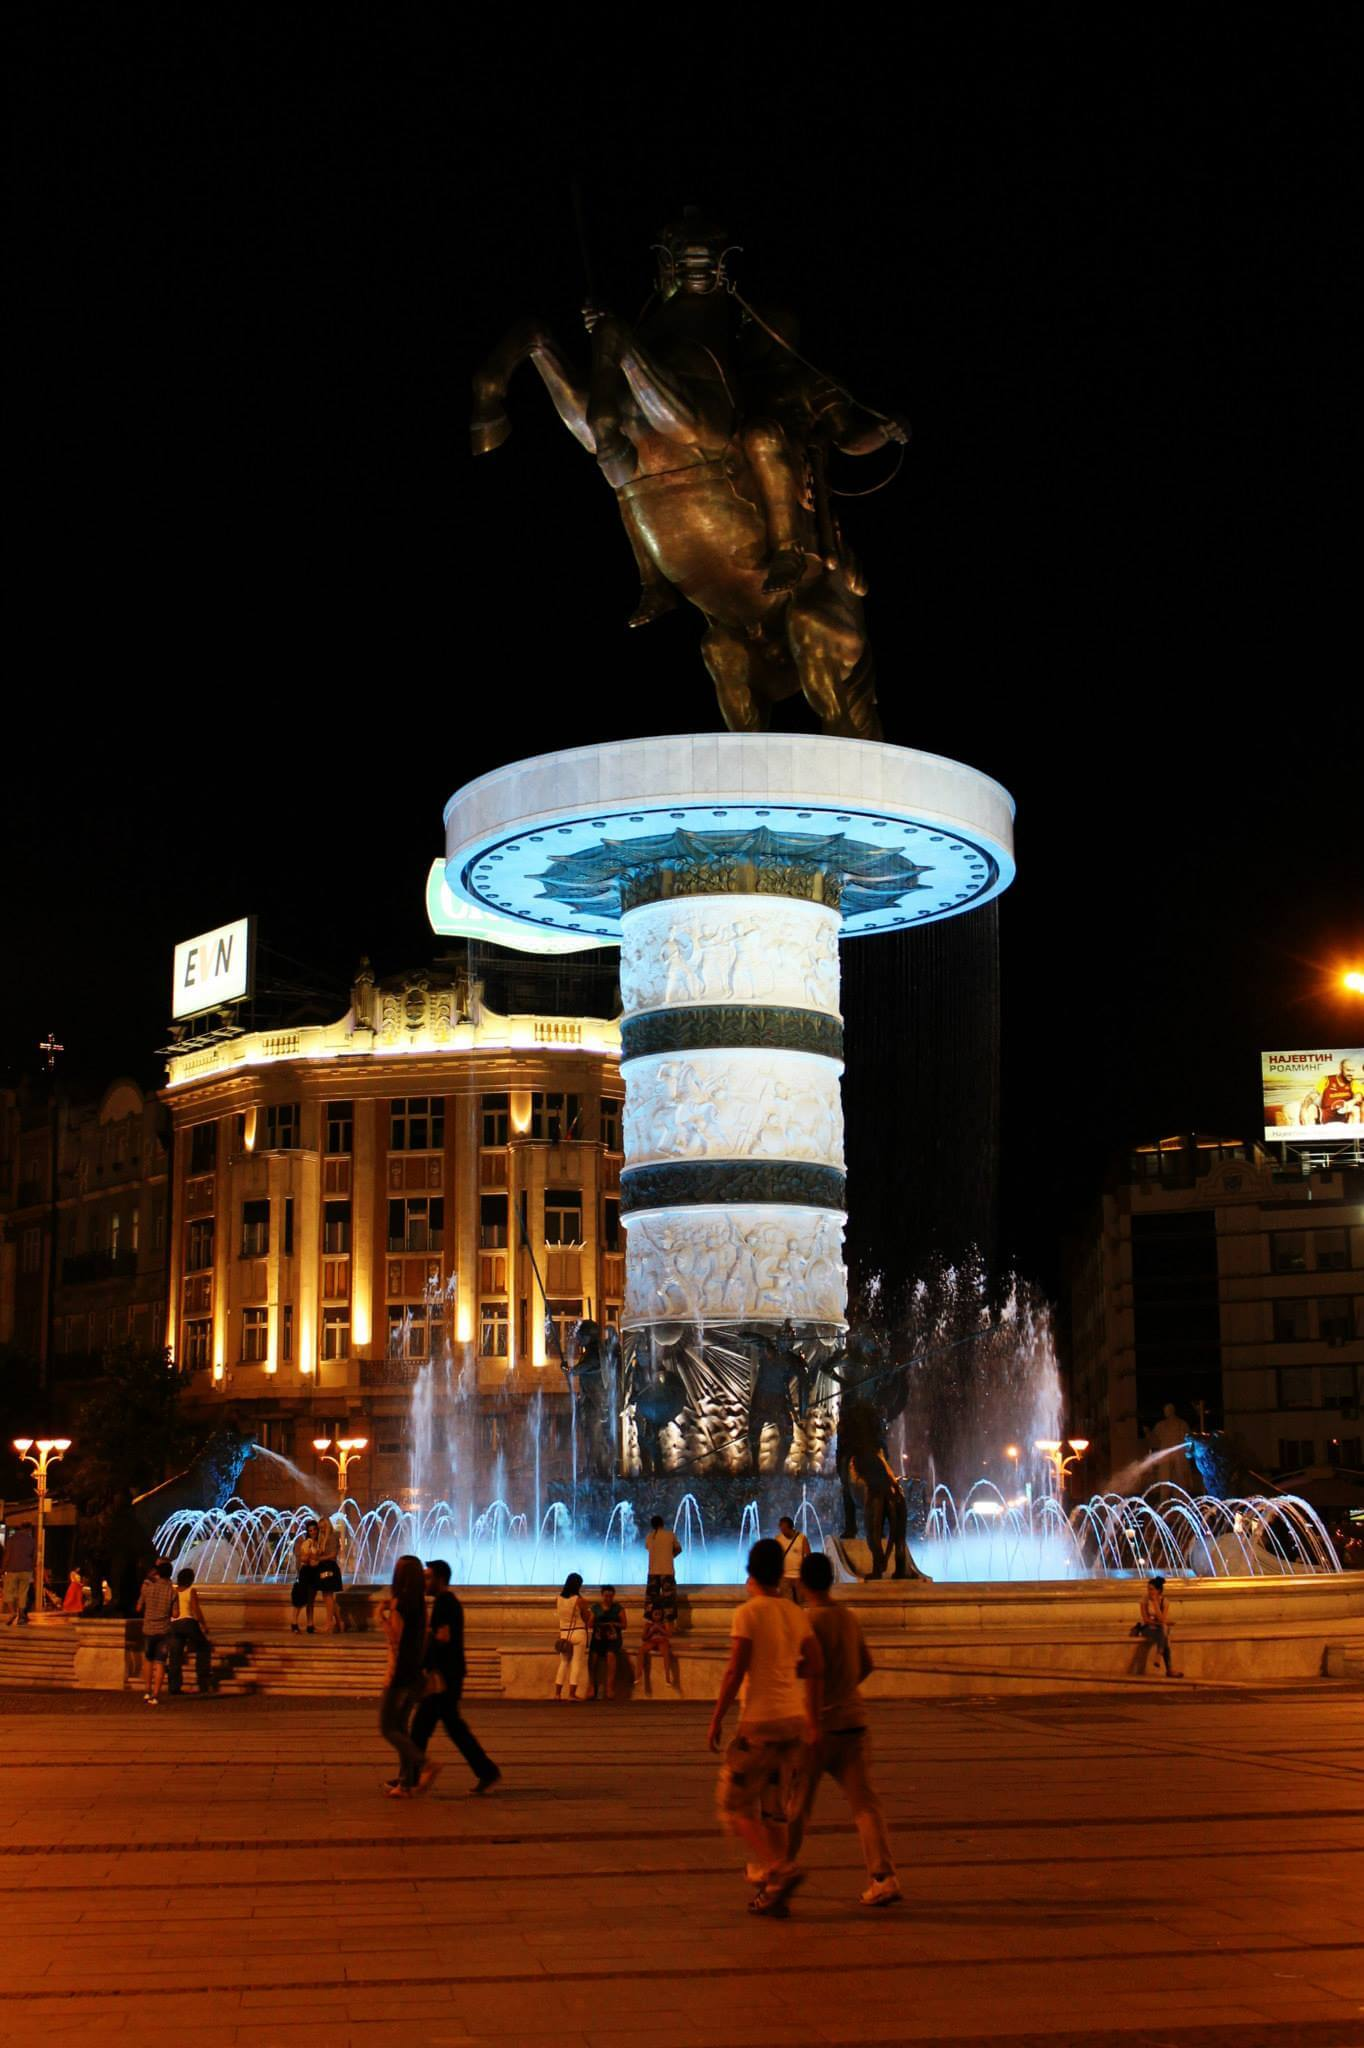 Warrior statue in the center of Skopje. (Equipped with light show and fountain!). Taken by Kirstie.